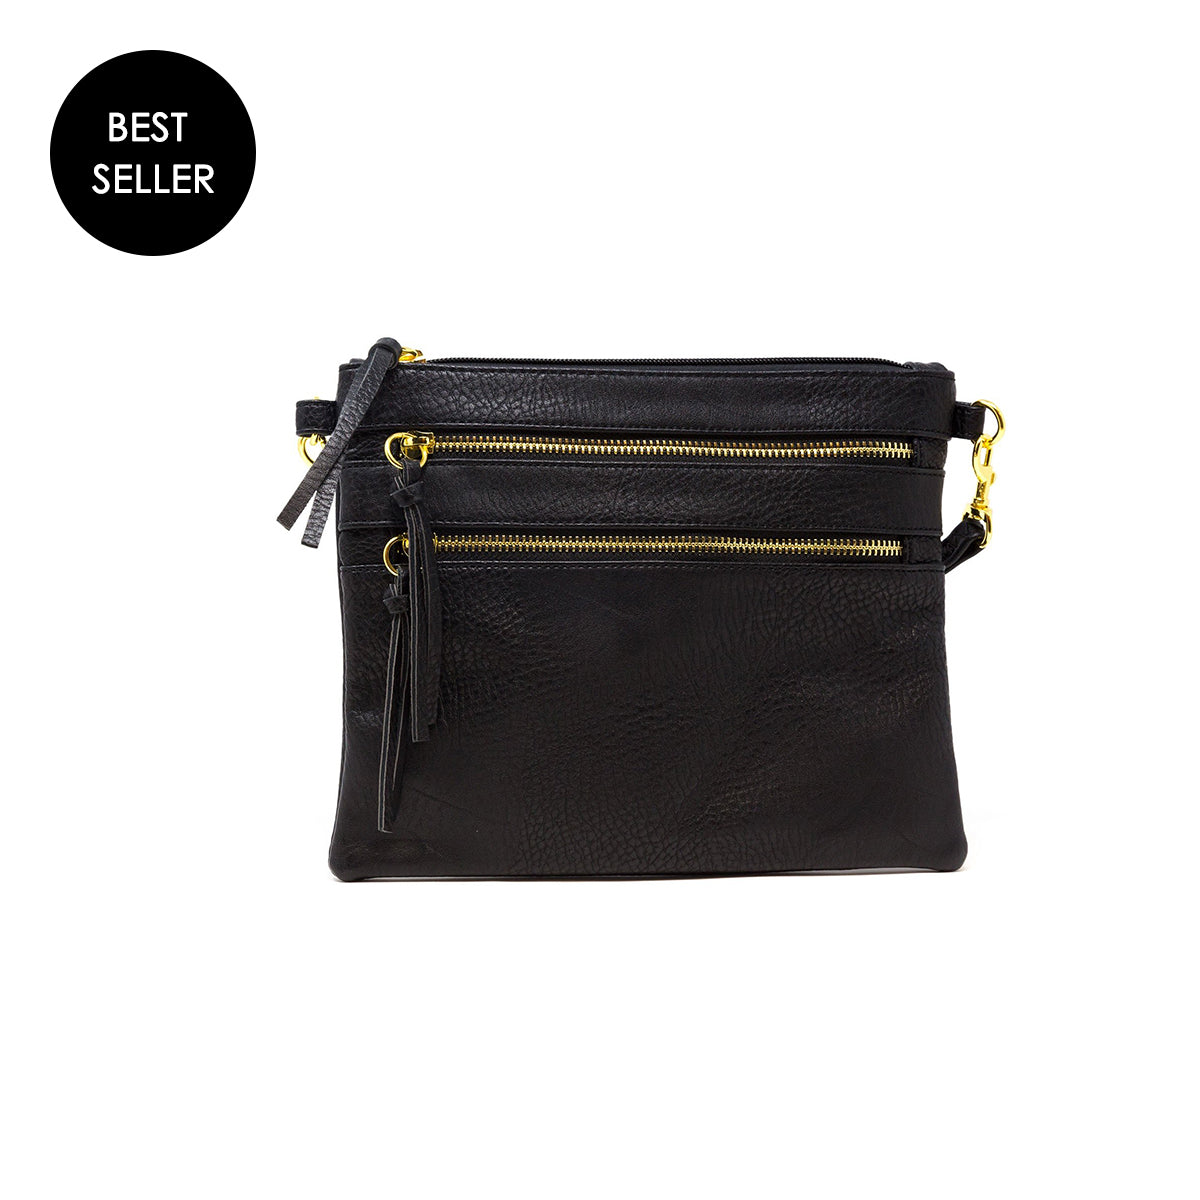 vegan leather black crossbody bag